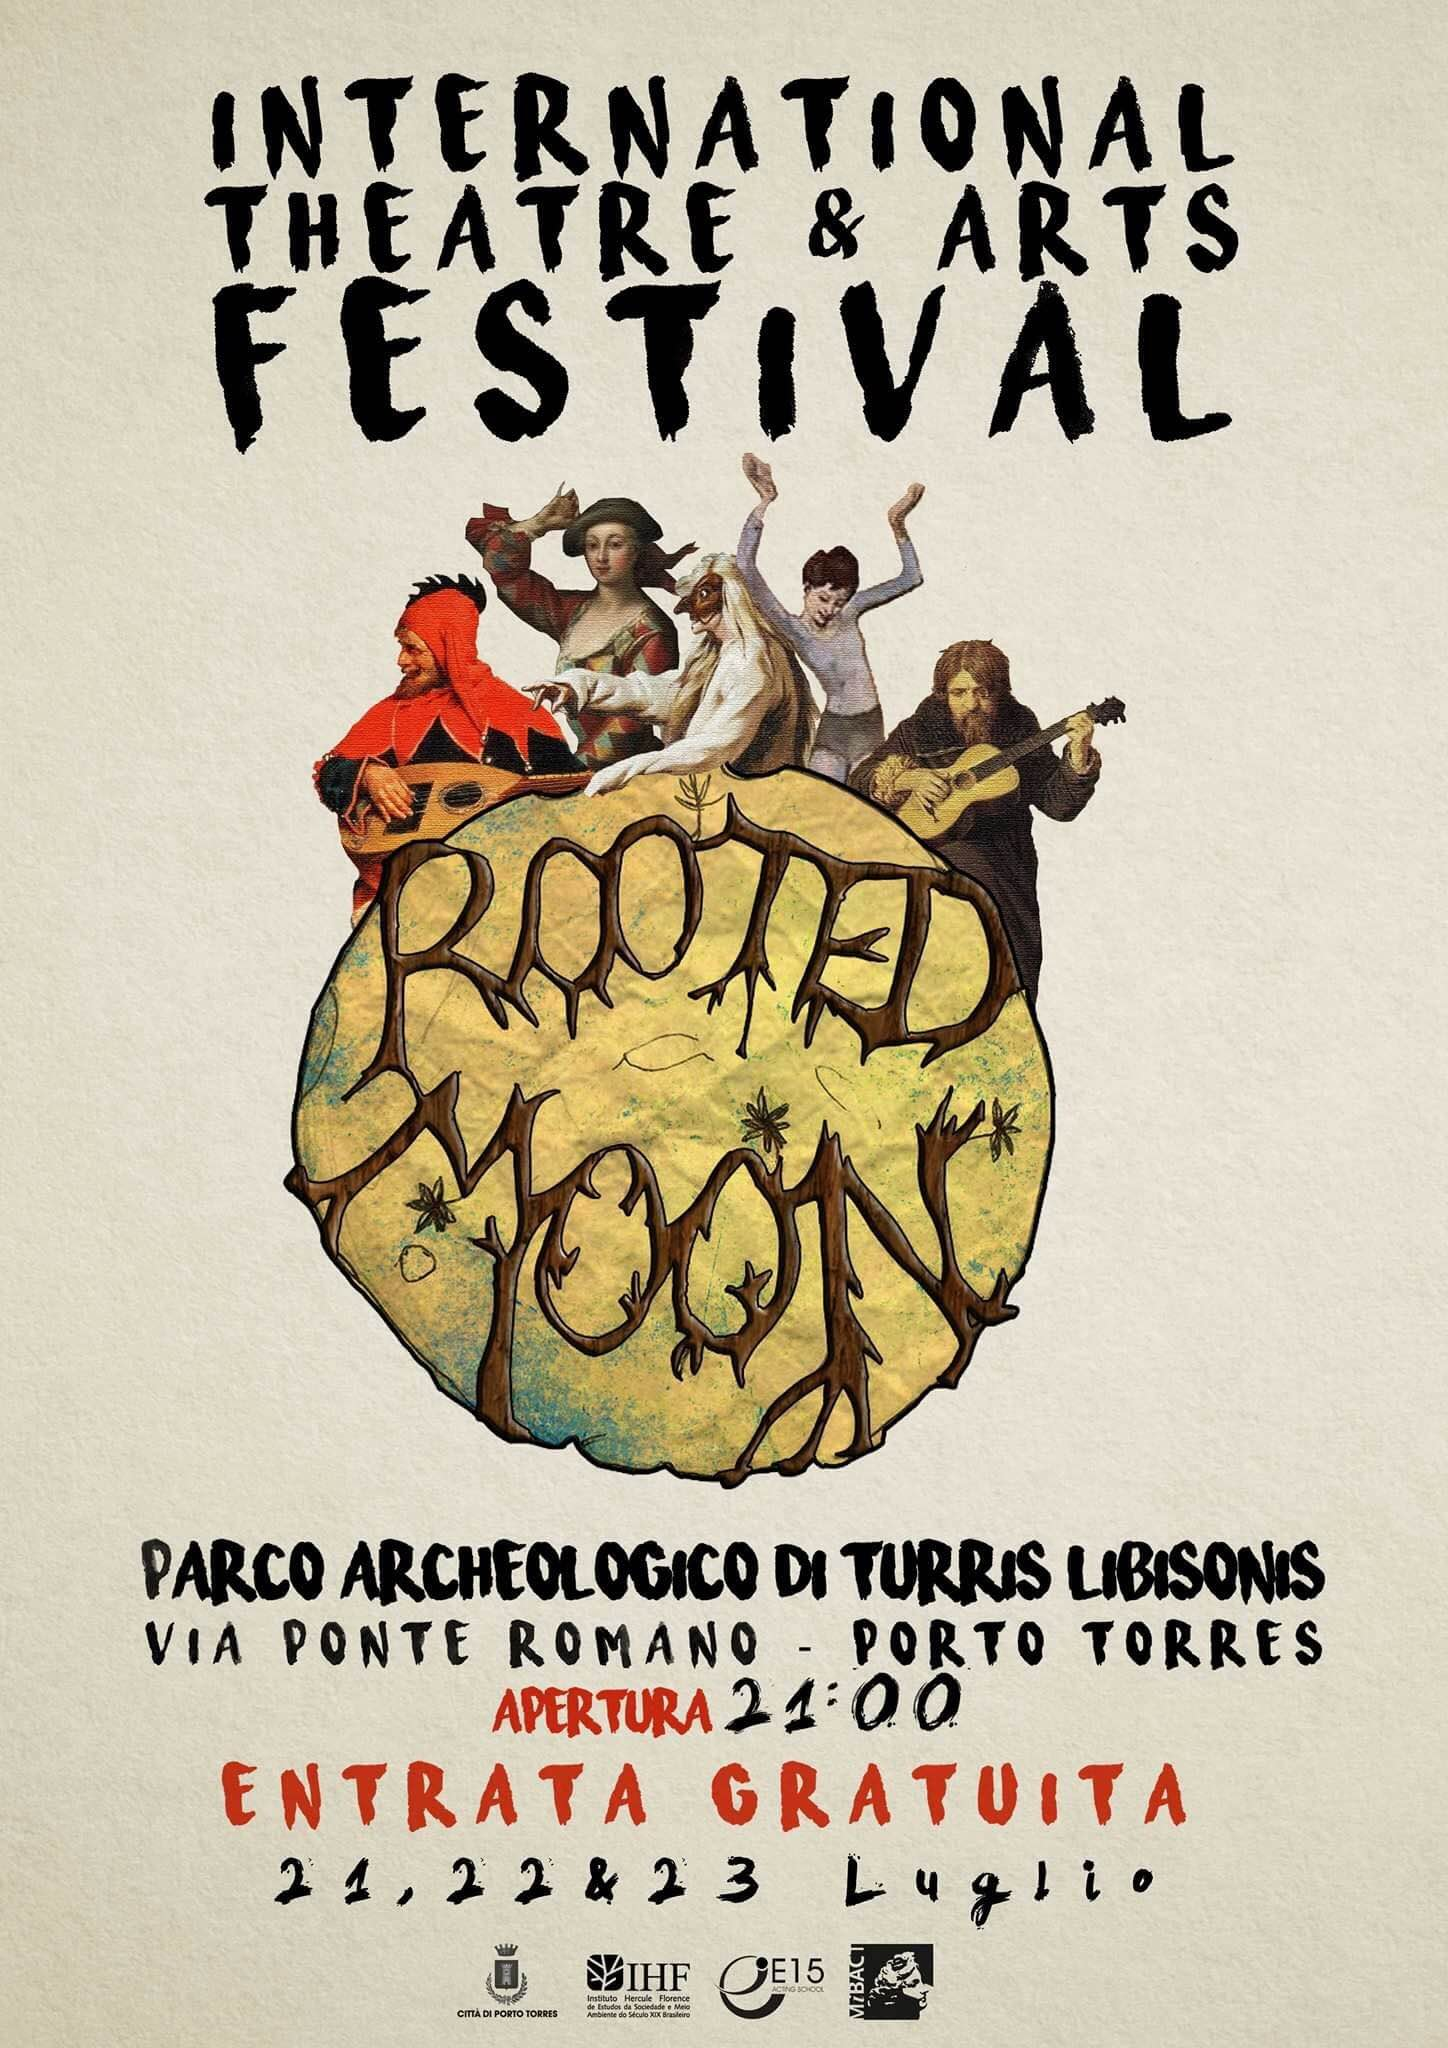 """""""Rooted Moon International Theatre and Arts Festival"""" Porto Torres Parco Archeologico Turris Libissonis 21/22/23 luglio 2016."""